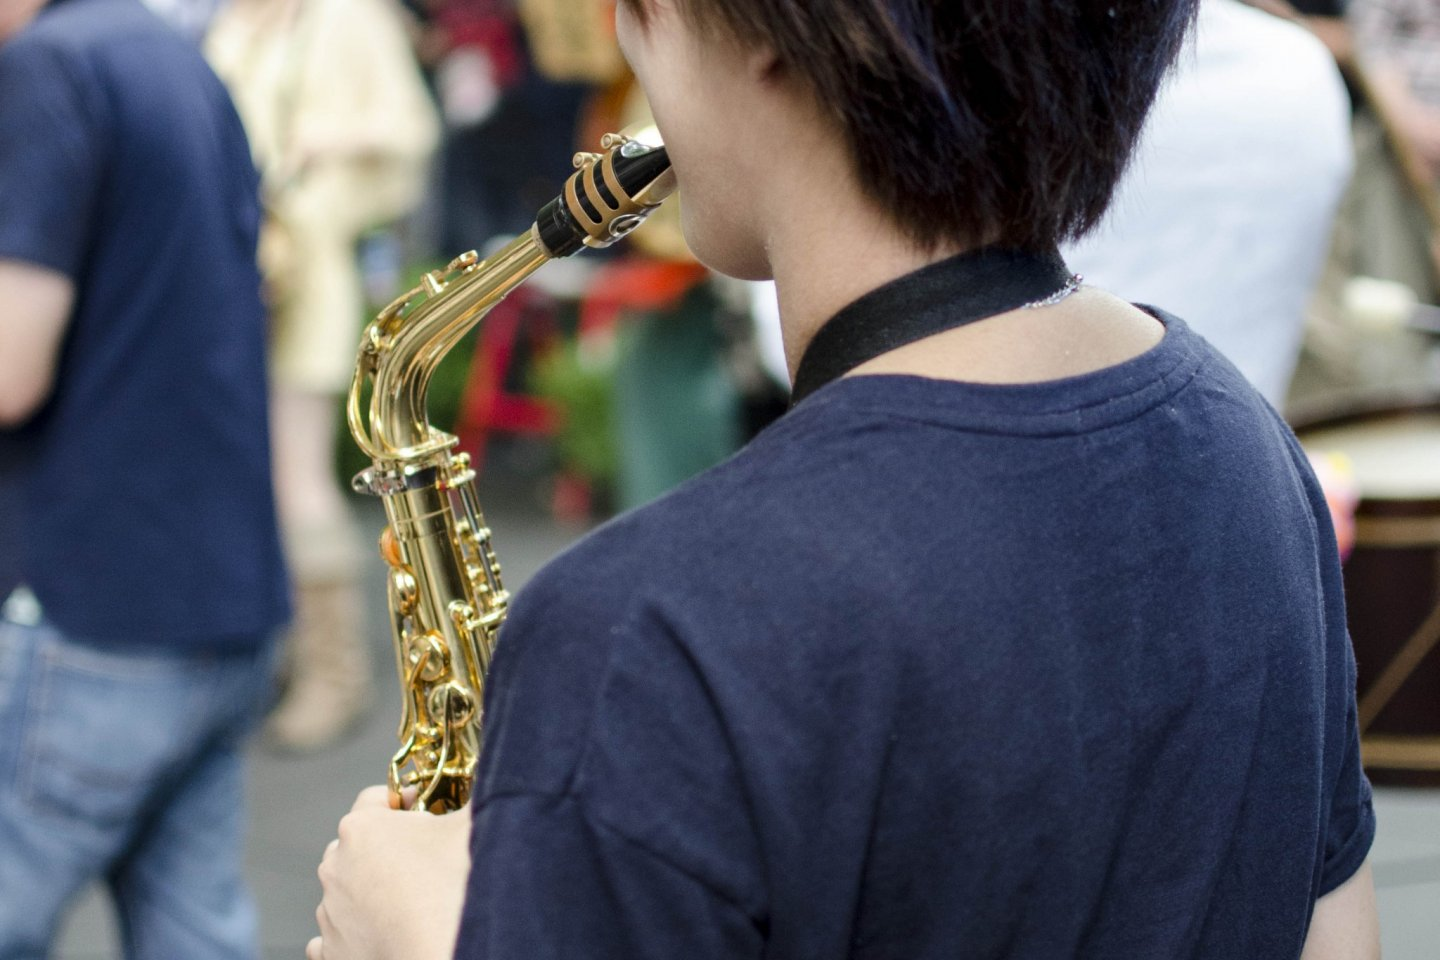 A Jazz player performing in the plaza